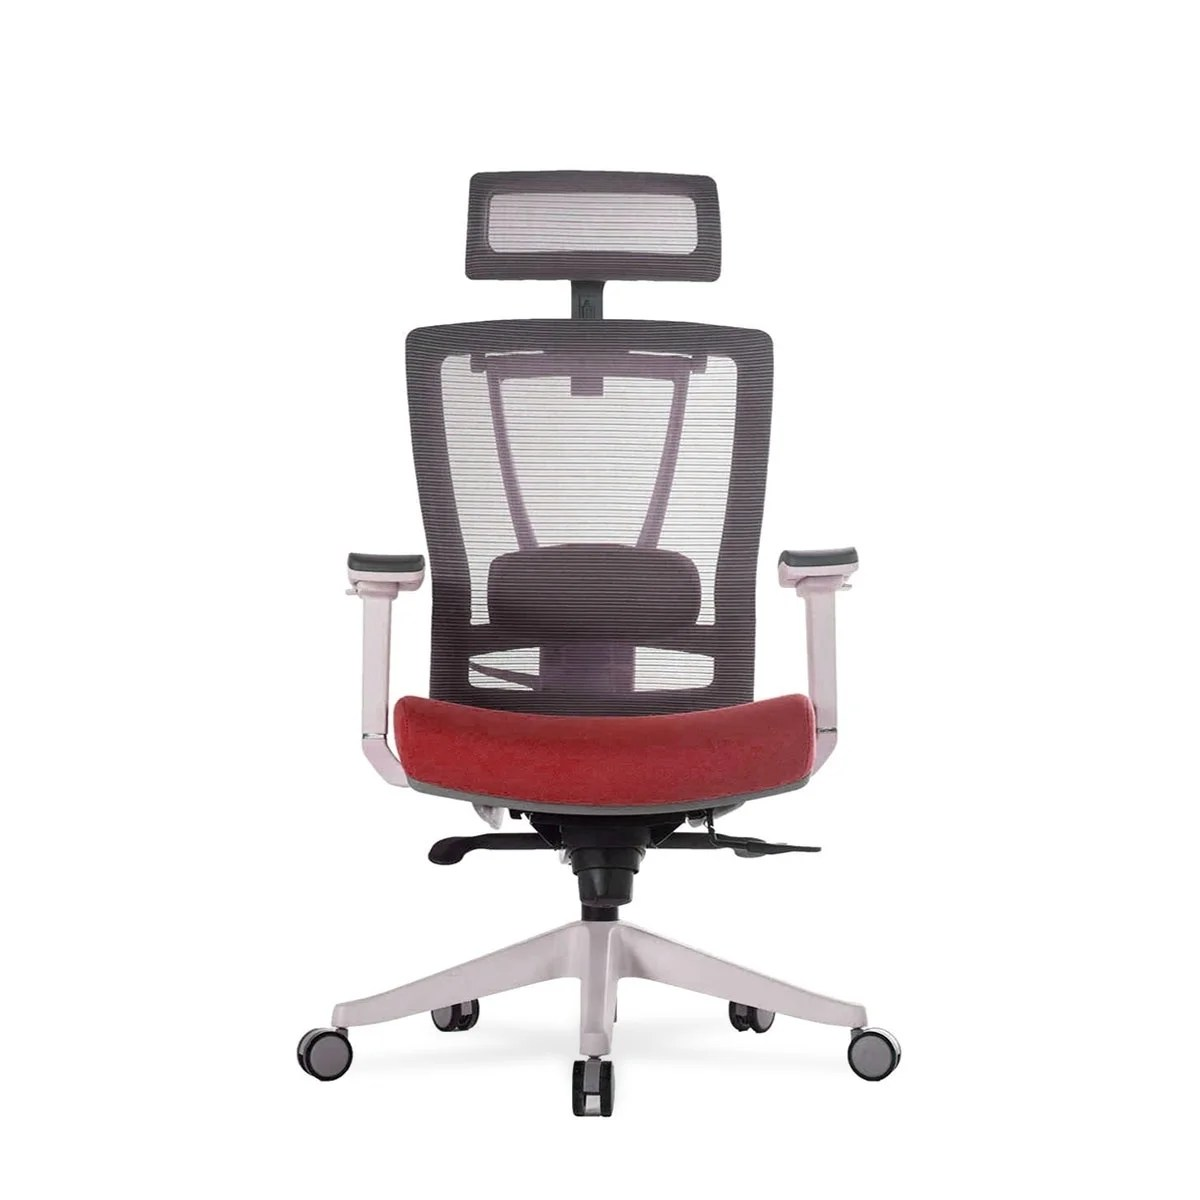 Office Chair Posture Autonomous Ergochair Premium Ergonomic Office Chair